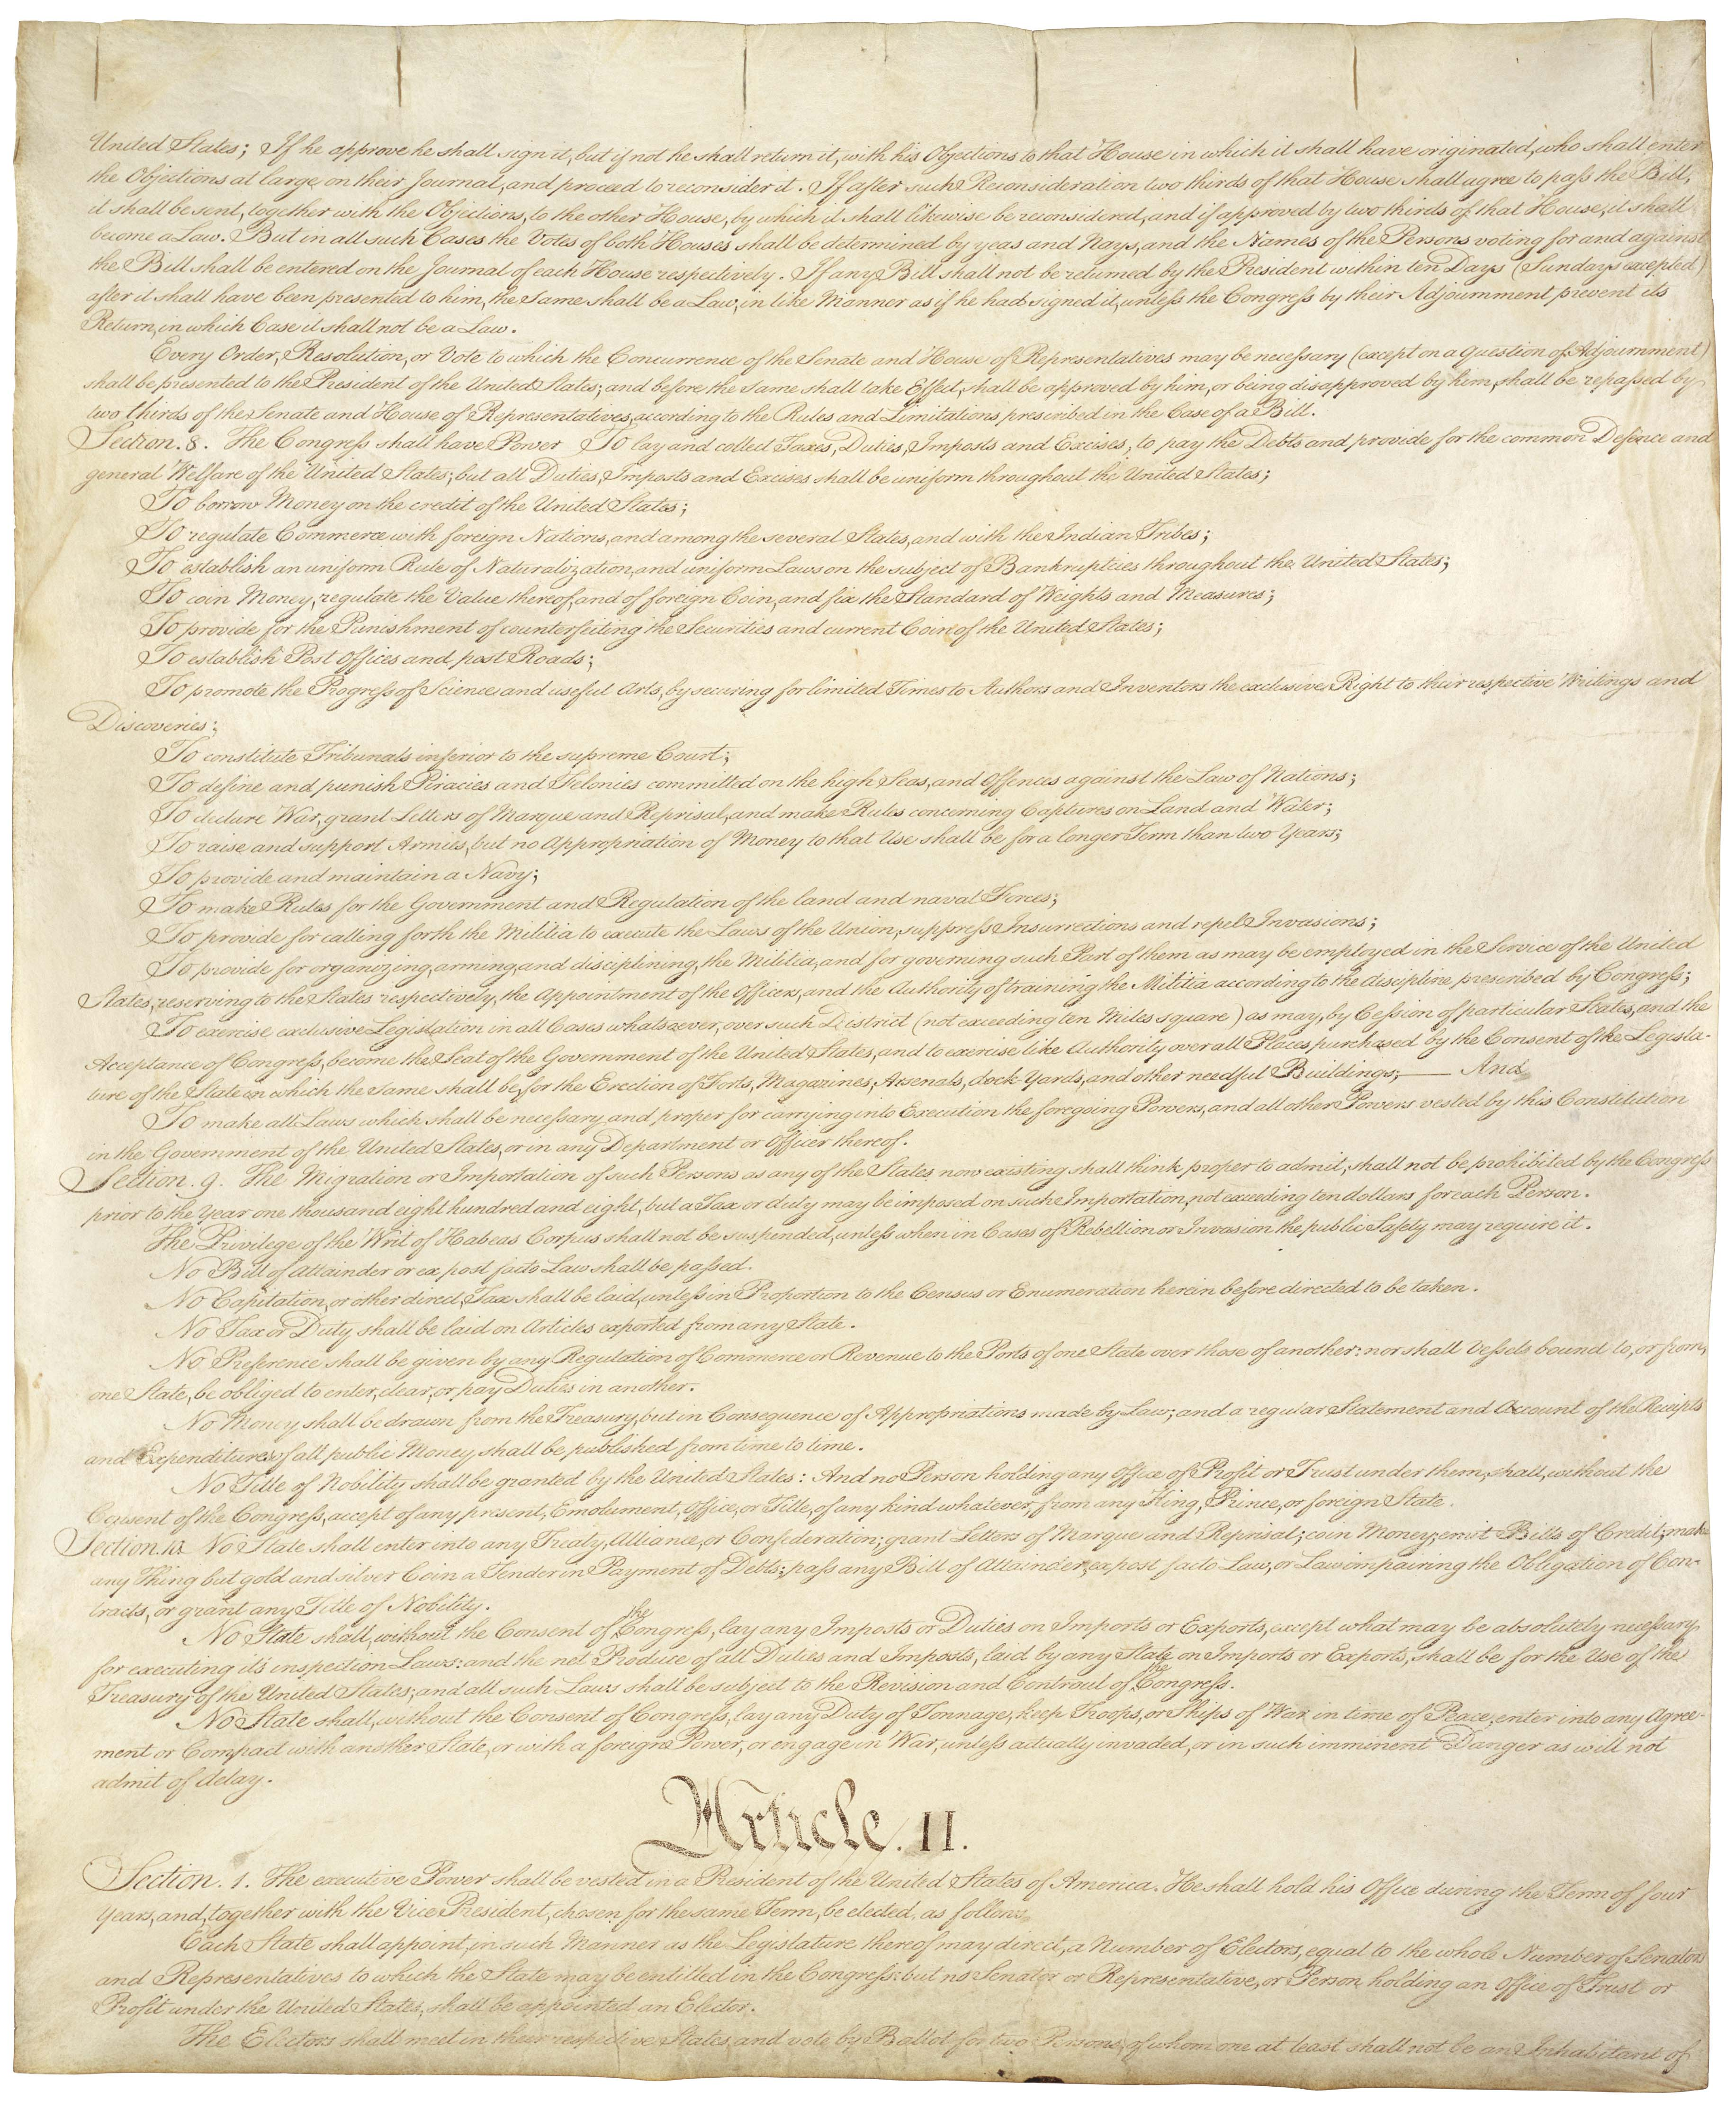 Page 2 U.S. Constitution (image of original)